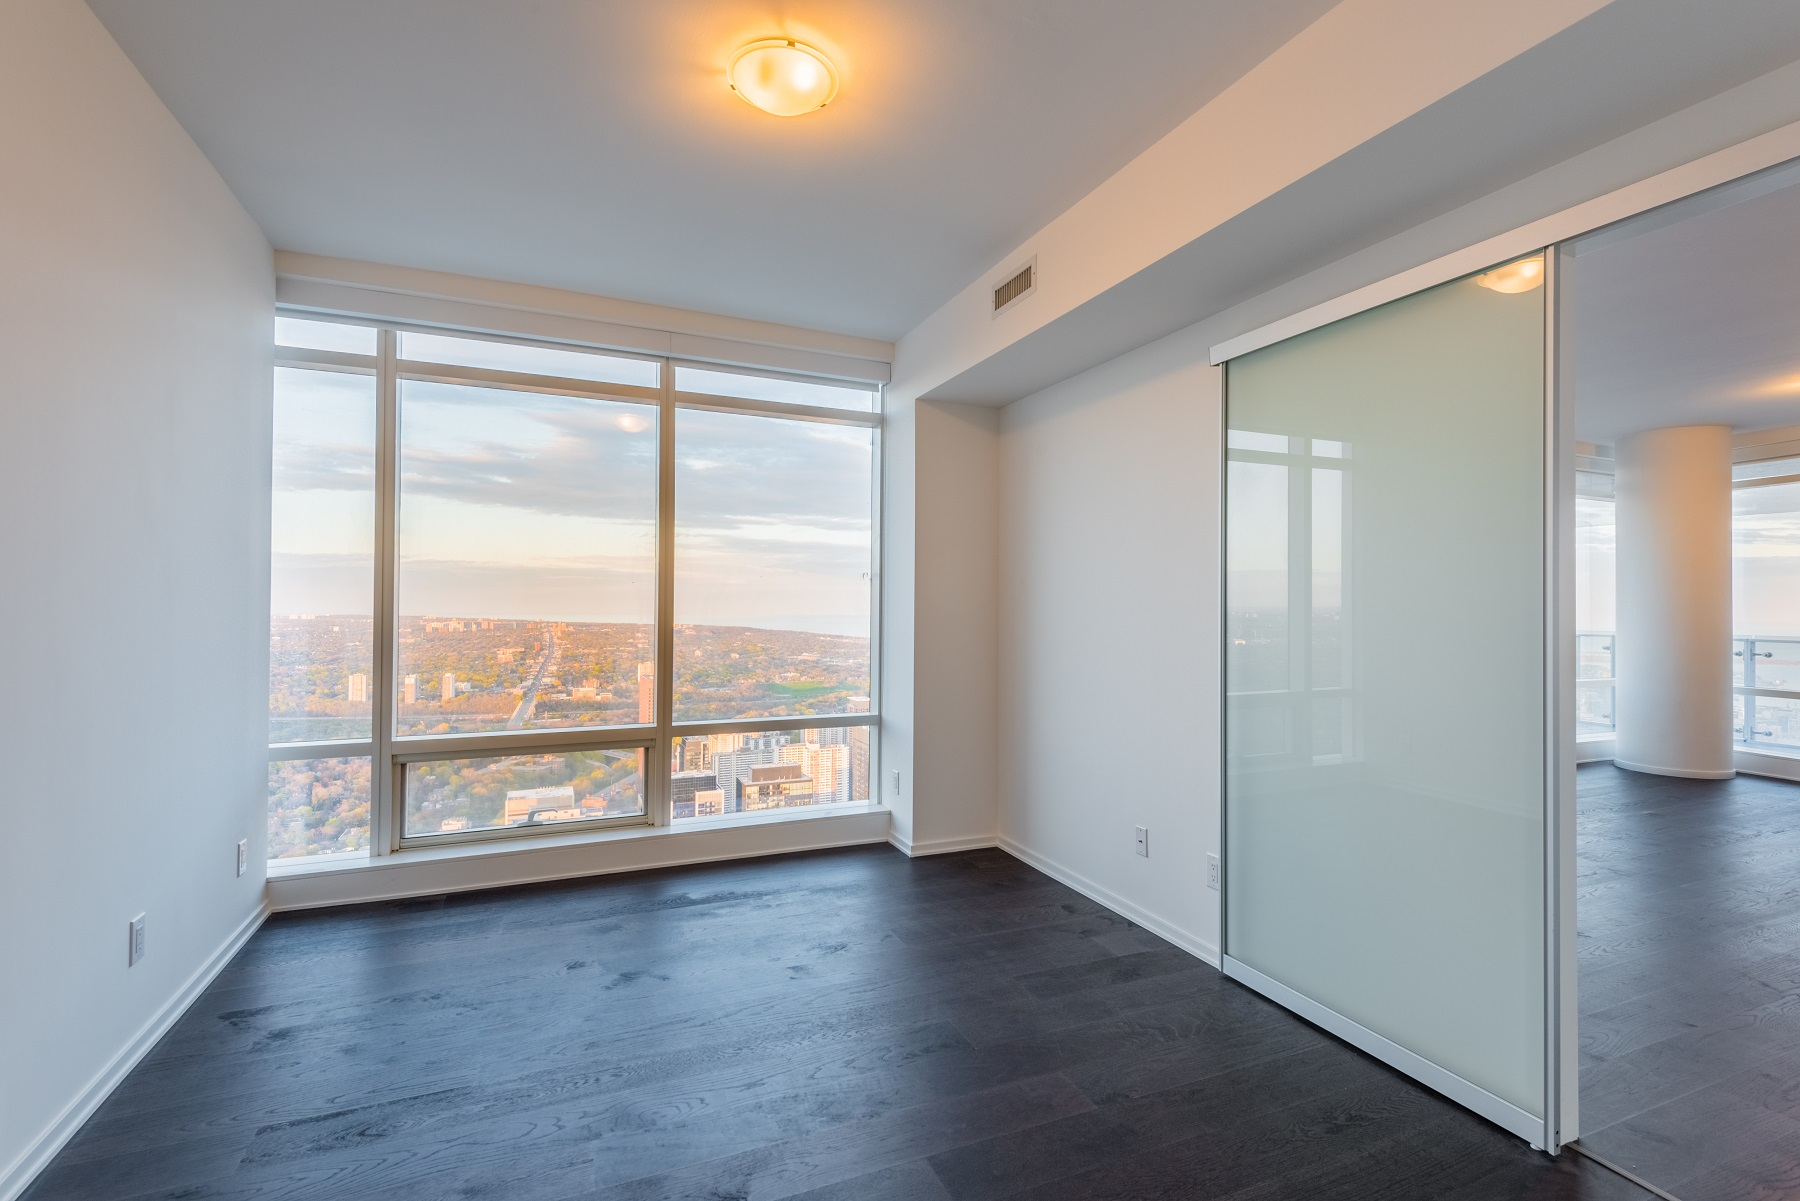 The master bedroom is tall, spacious and offers scenic views of Toronto.